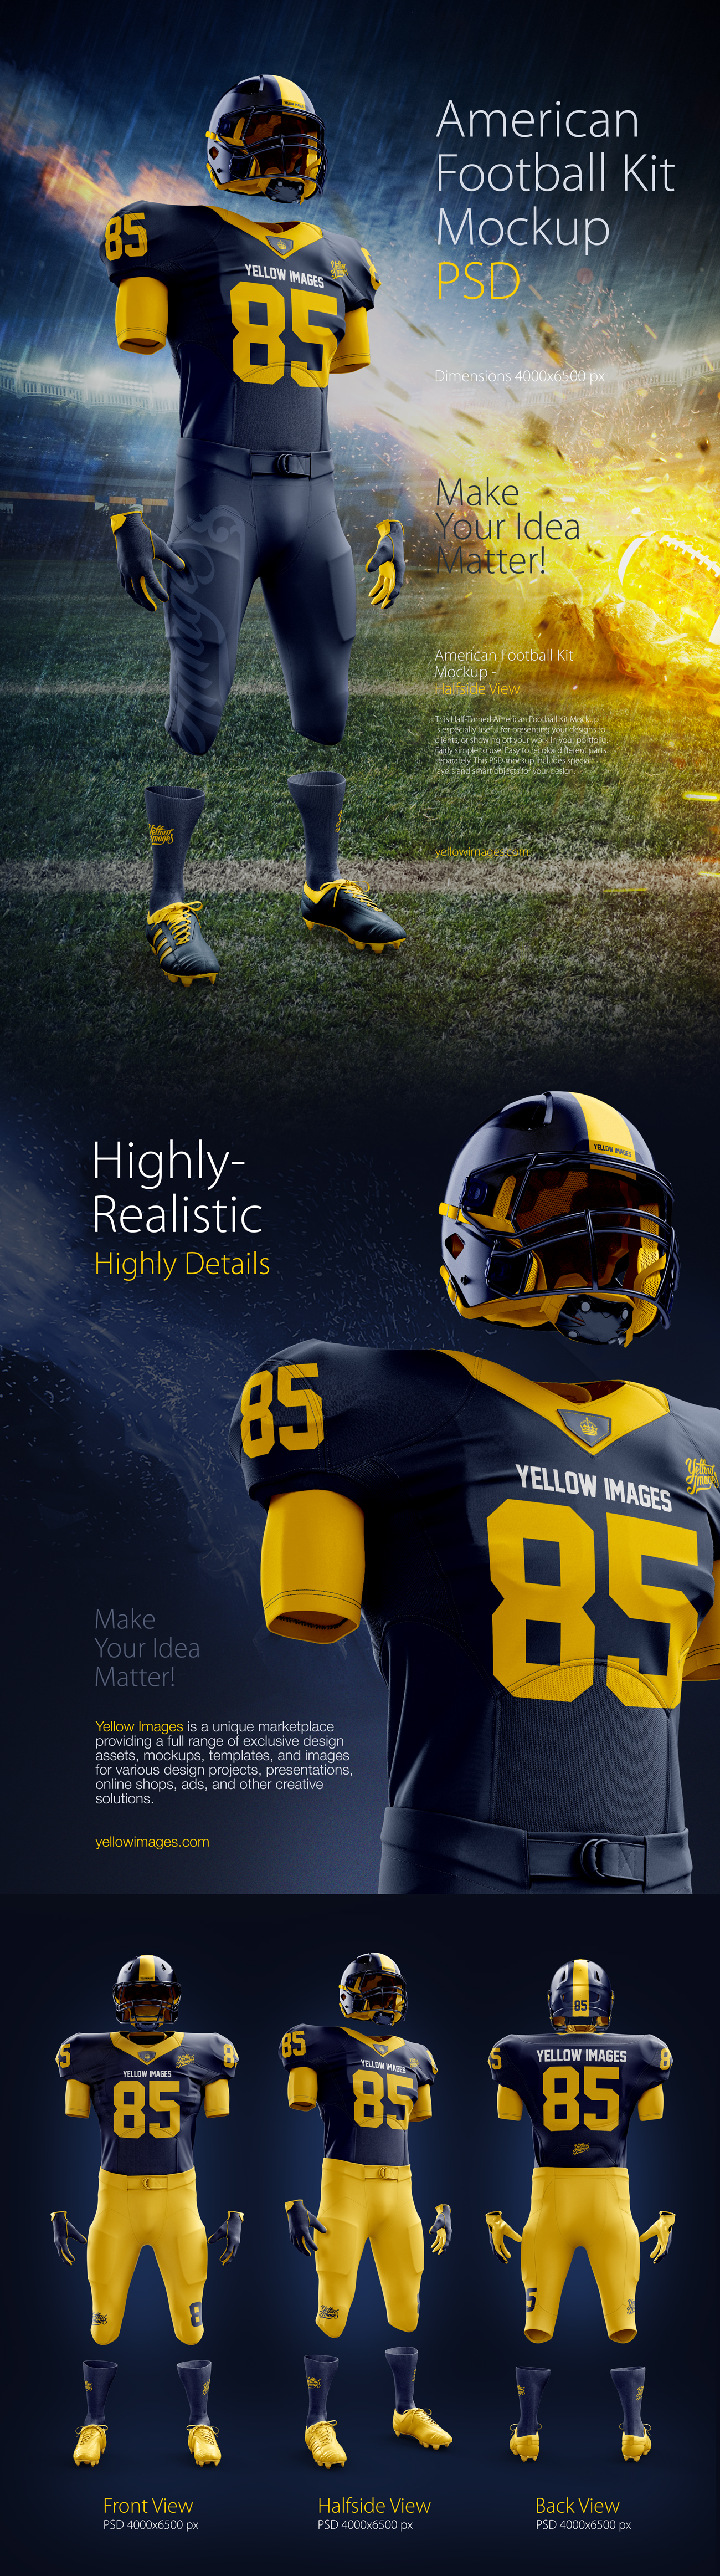 American Football Kit Mockup PSD